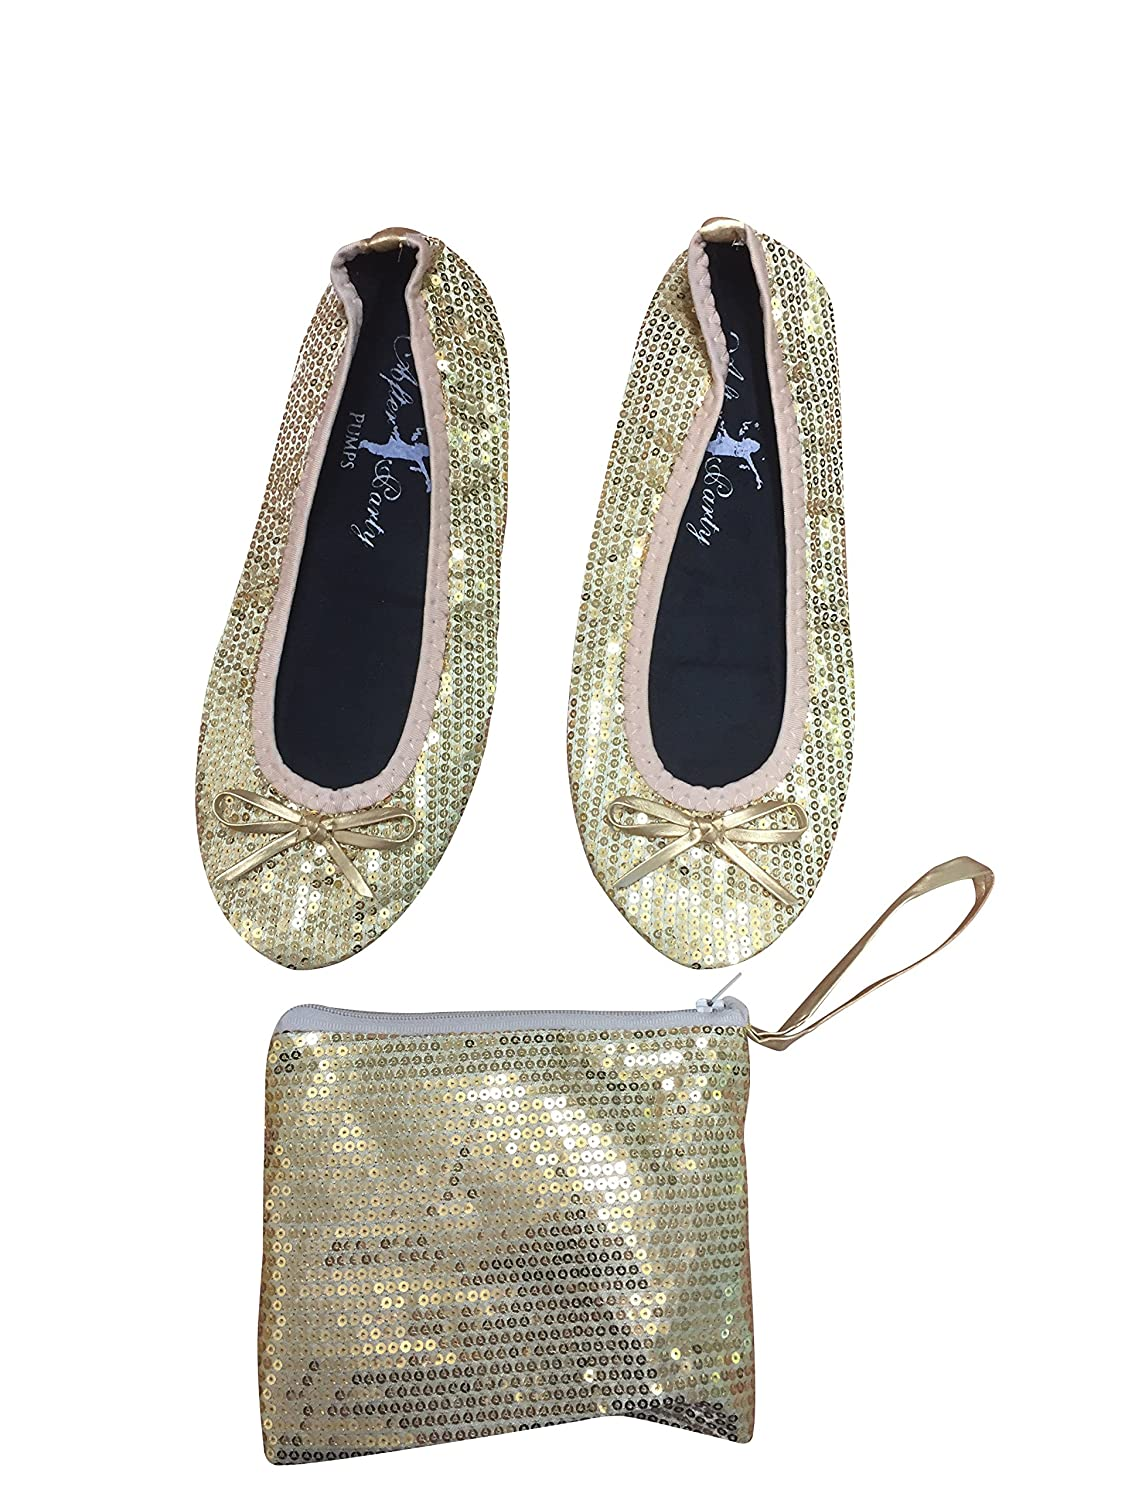 970ed0a60c46 After Party Pumps Ladies Roll up Shoes Fold up Pumps with Carrier Pouch 3  Ranges Original Animal Sequin  Amazon.co.uk  Shoes   Bags